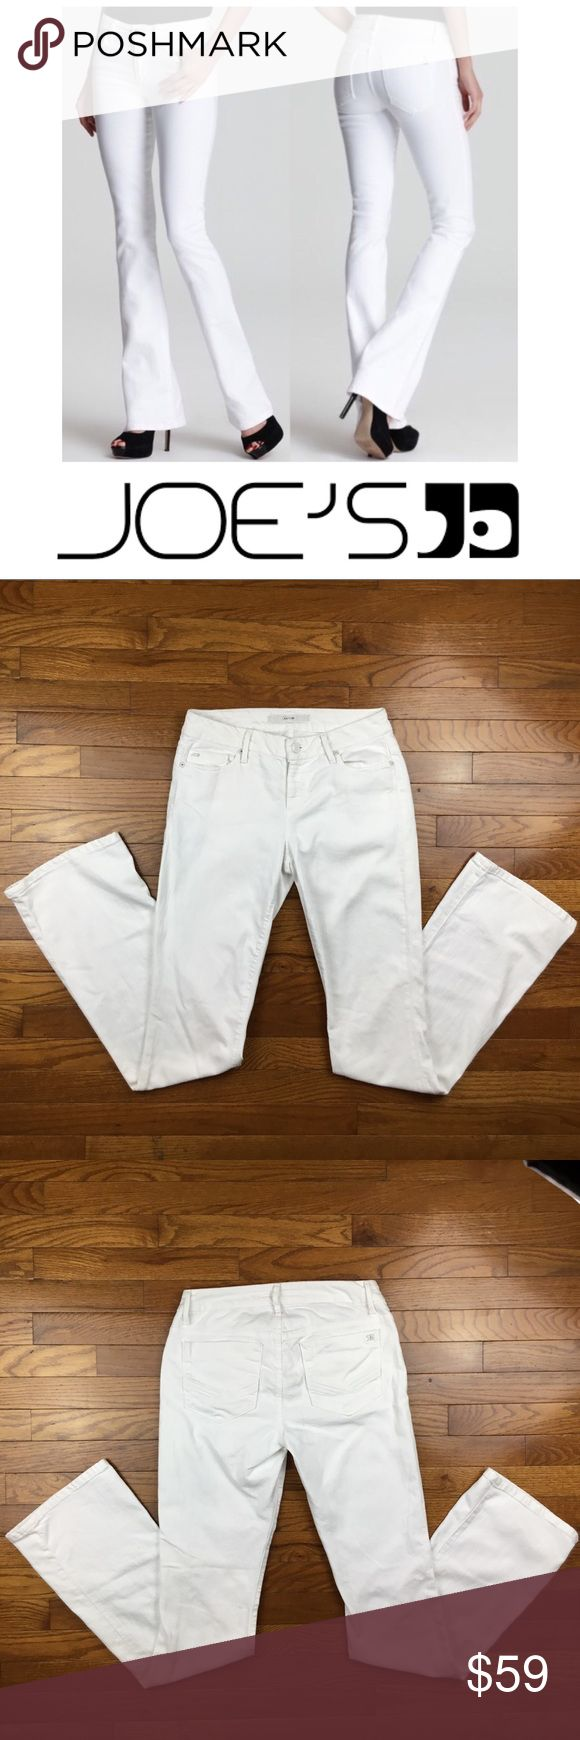 """Joe's Jeans Honey White Bootcut Jeans Joe's Jeans Honey White High-rise Bootcut Jeans  -Size-28 -Length-43"""" -Inseam-34"""" -Rise-8.5 -Excellent Condition- no flaws or stains Joe's Jeans Jeans Boot Cut"""